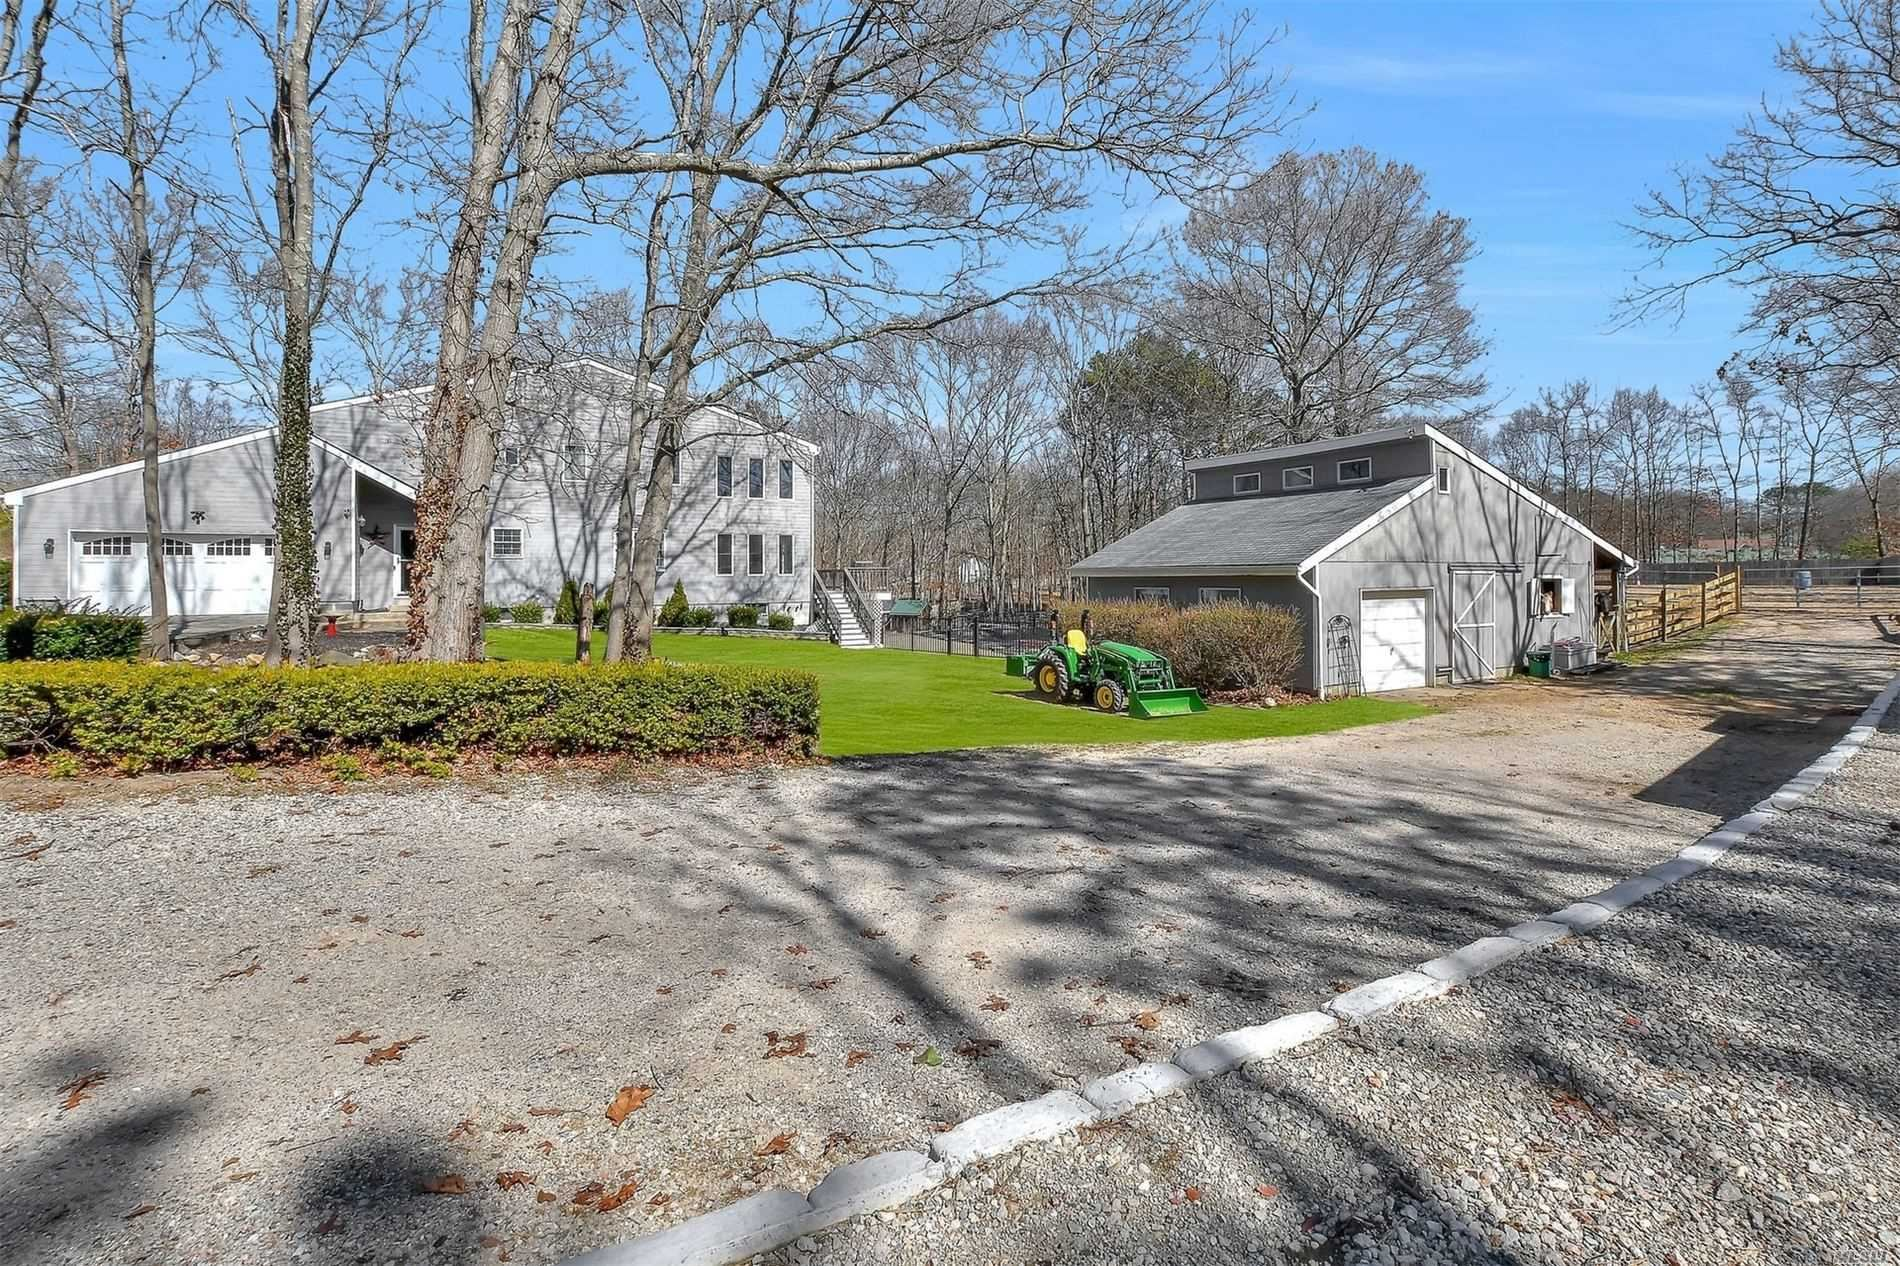 163 Silas Carter Road, Manorville, NY 11949 - MLS#: 3208760